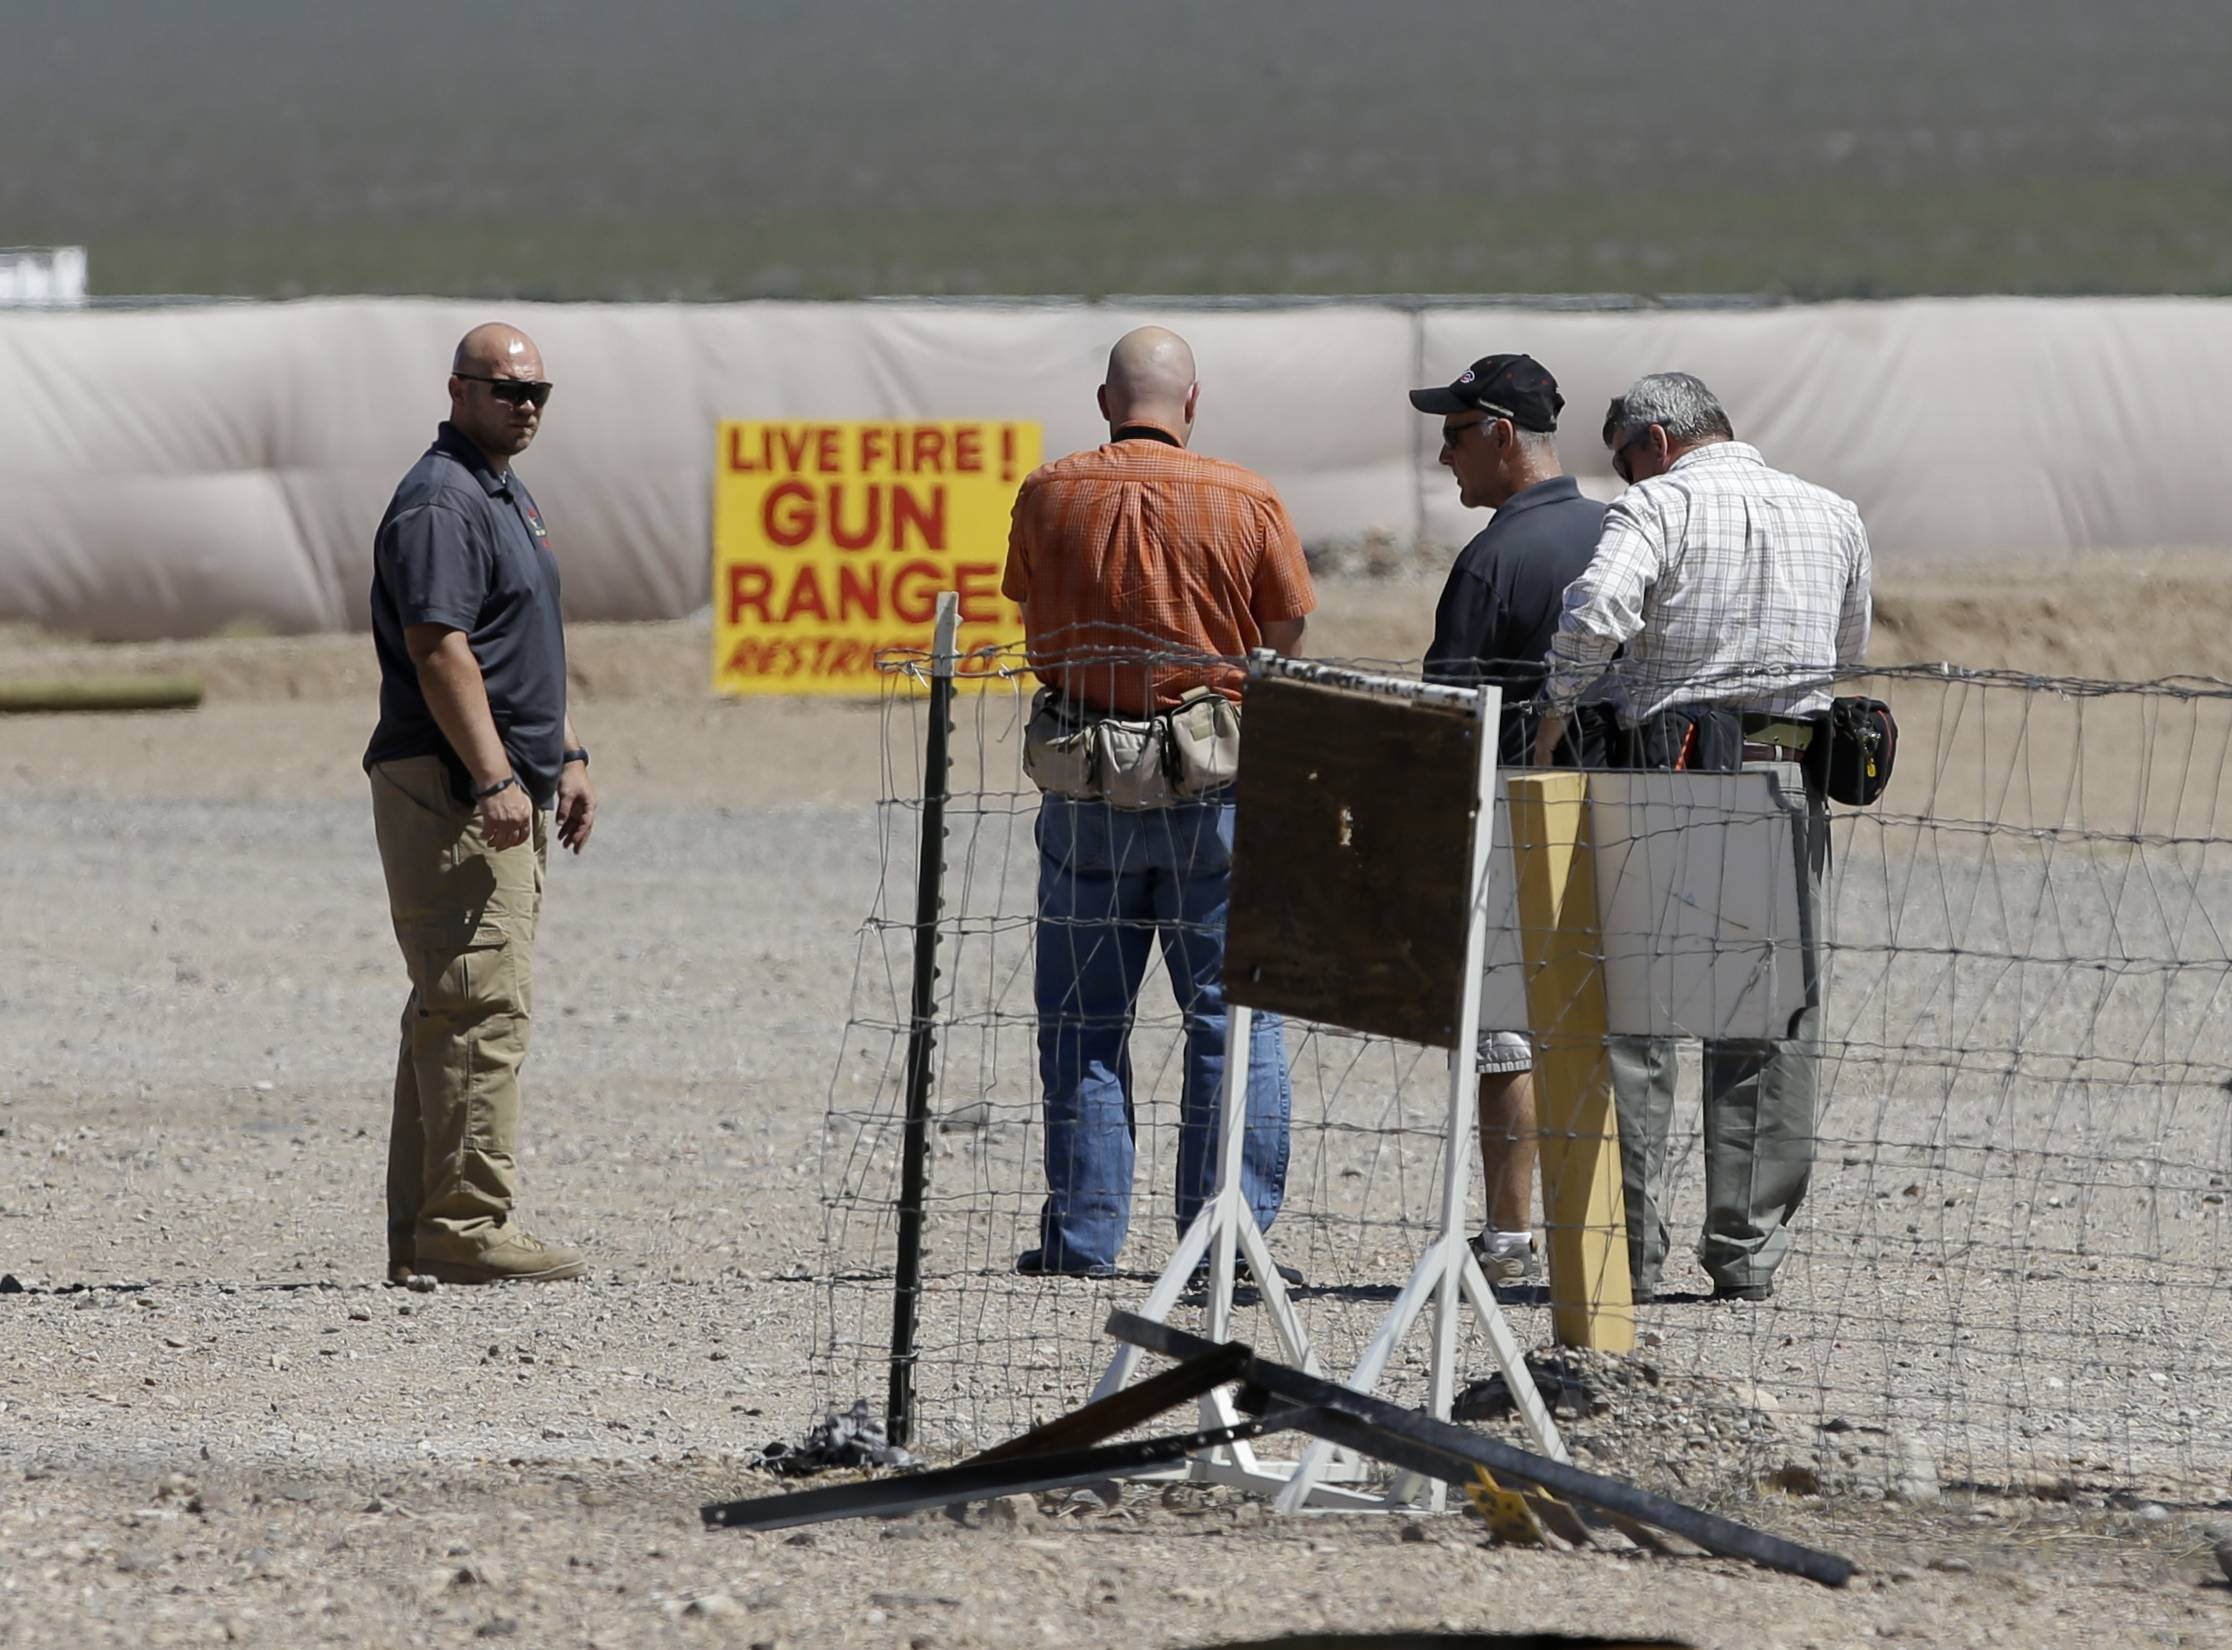 People are seen at the Last Stop outdoor shooting range Wednesday, Aug. 27, 2014, in White Hills, Ariz. Gun range instructor Charles Vacca was accidentally killed Monday, Aug. 25, 2014 at the range by a 9-year-old with an Uzi submachine gun.